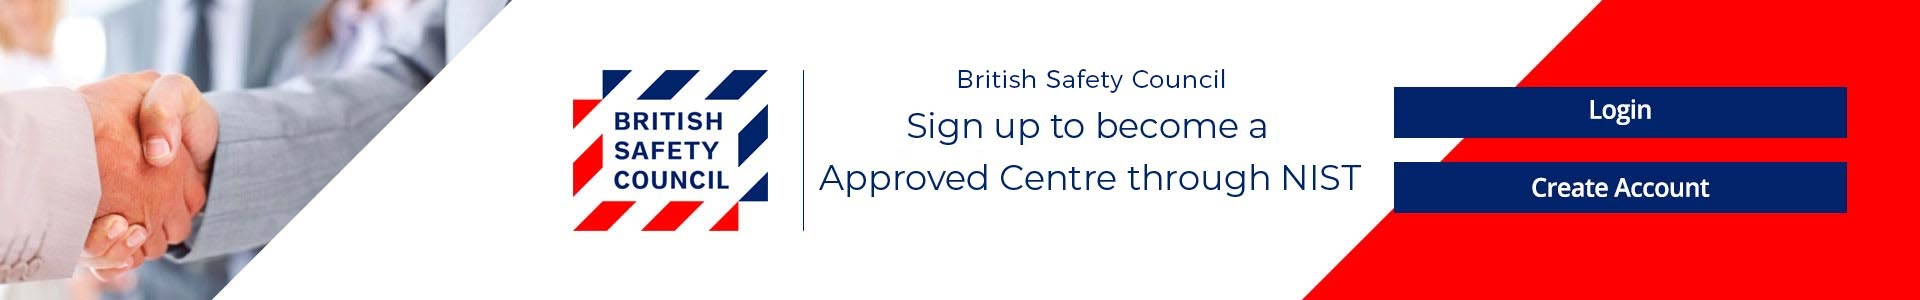 sign-up-to-become-a-bsc-approved-centre-through-nist